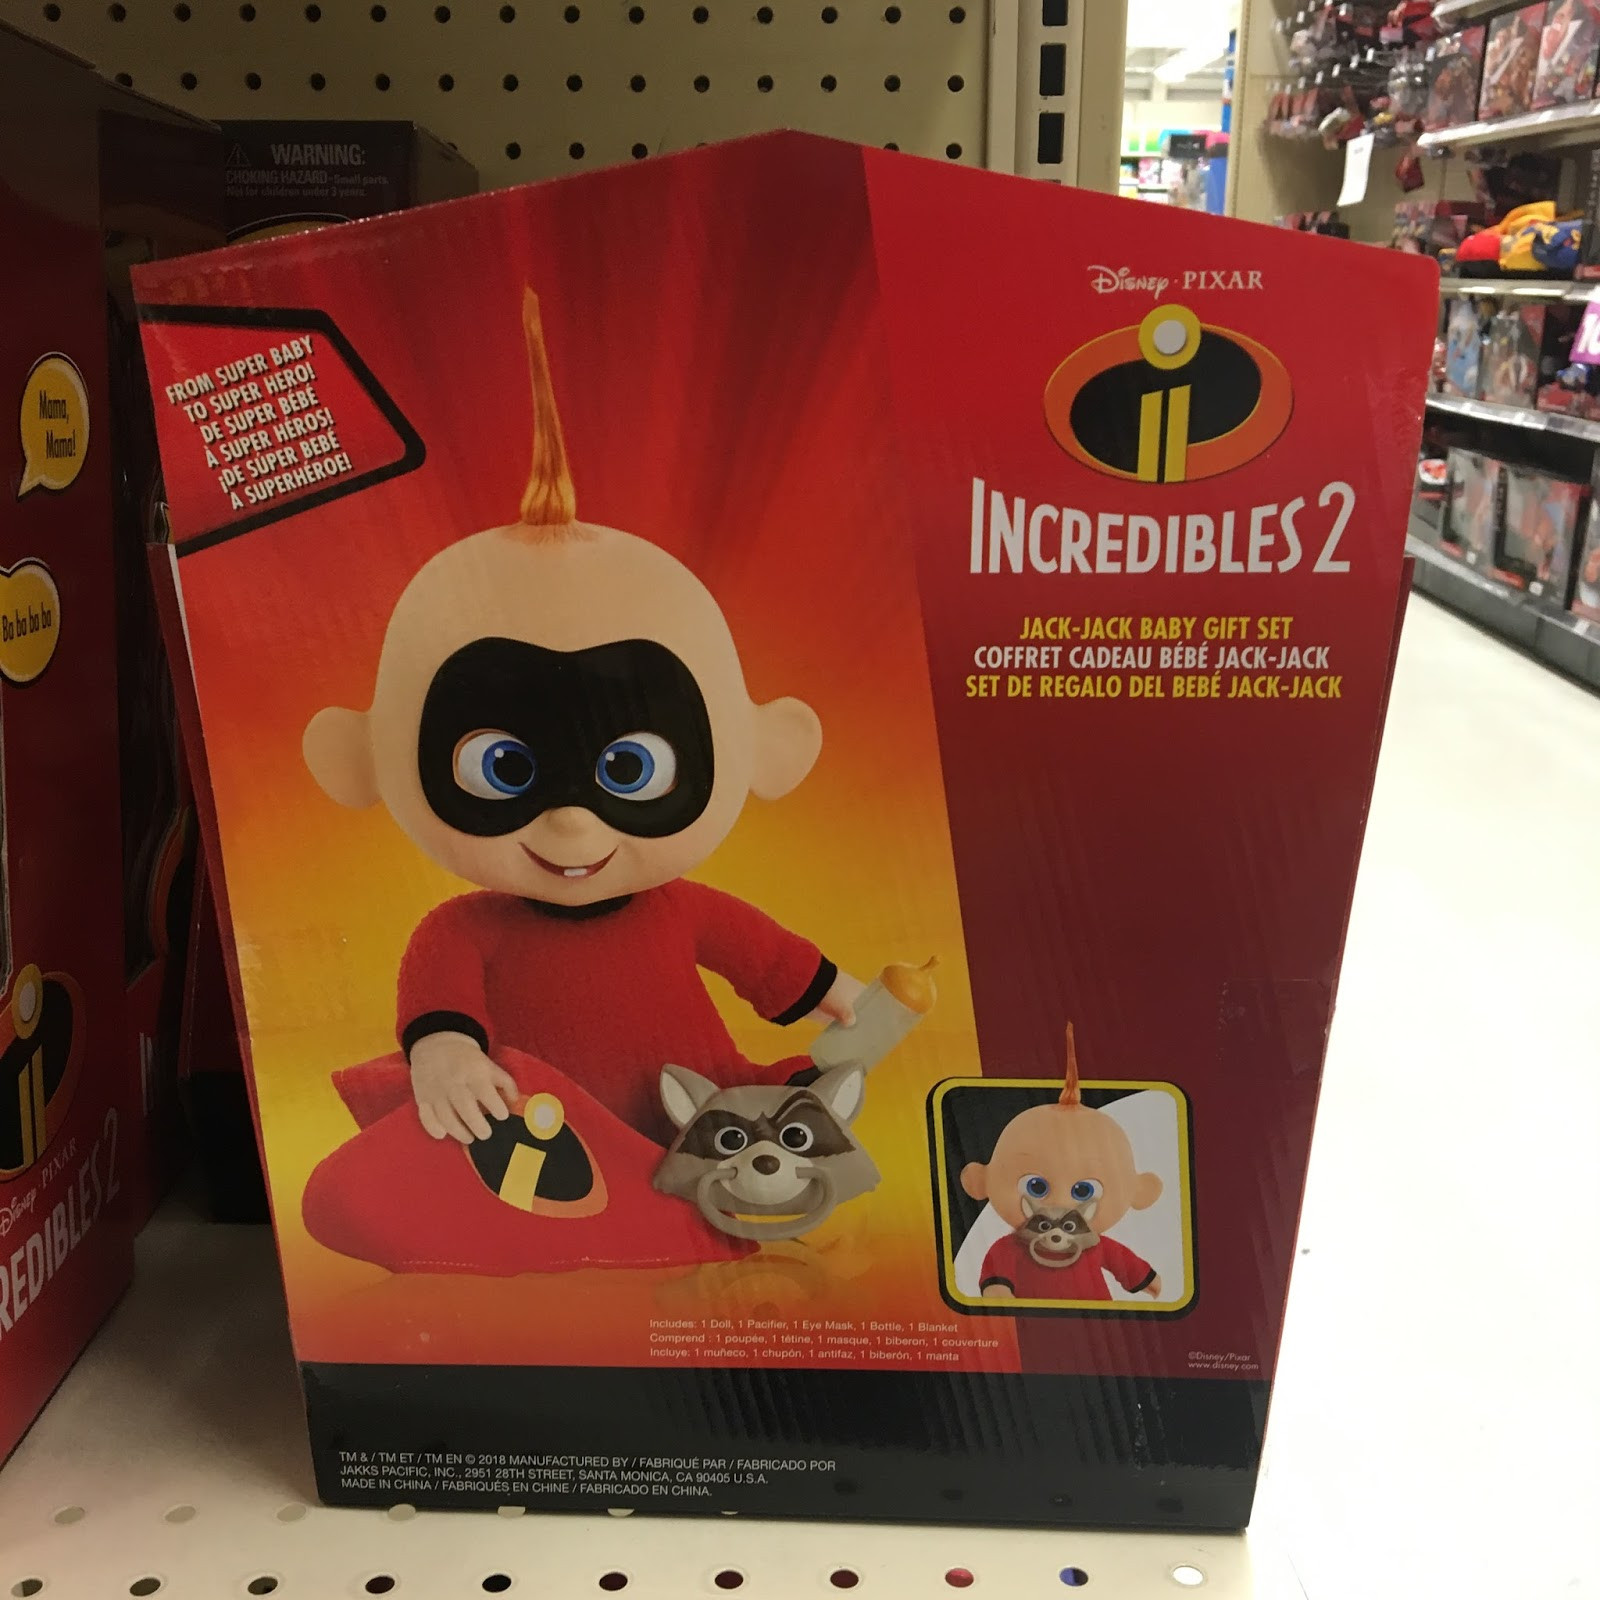 incredibles 2 toys jack jack baby gift set